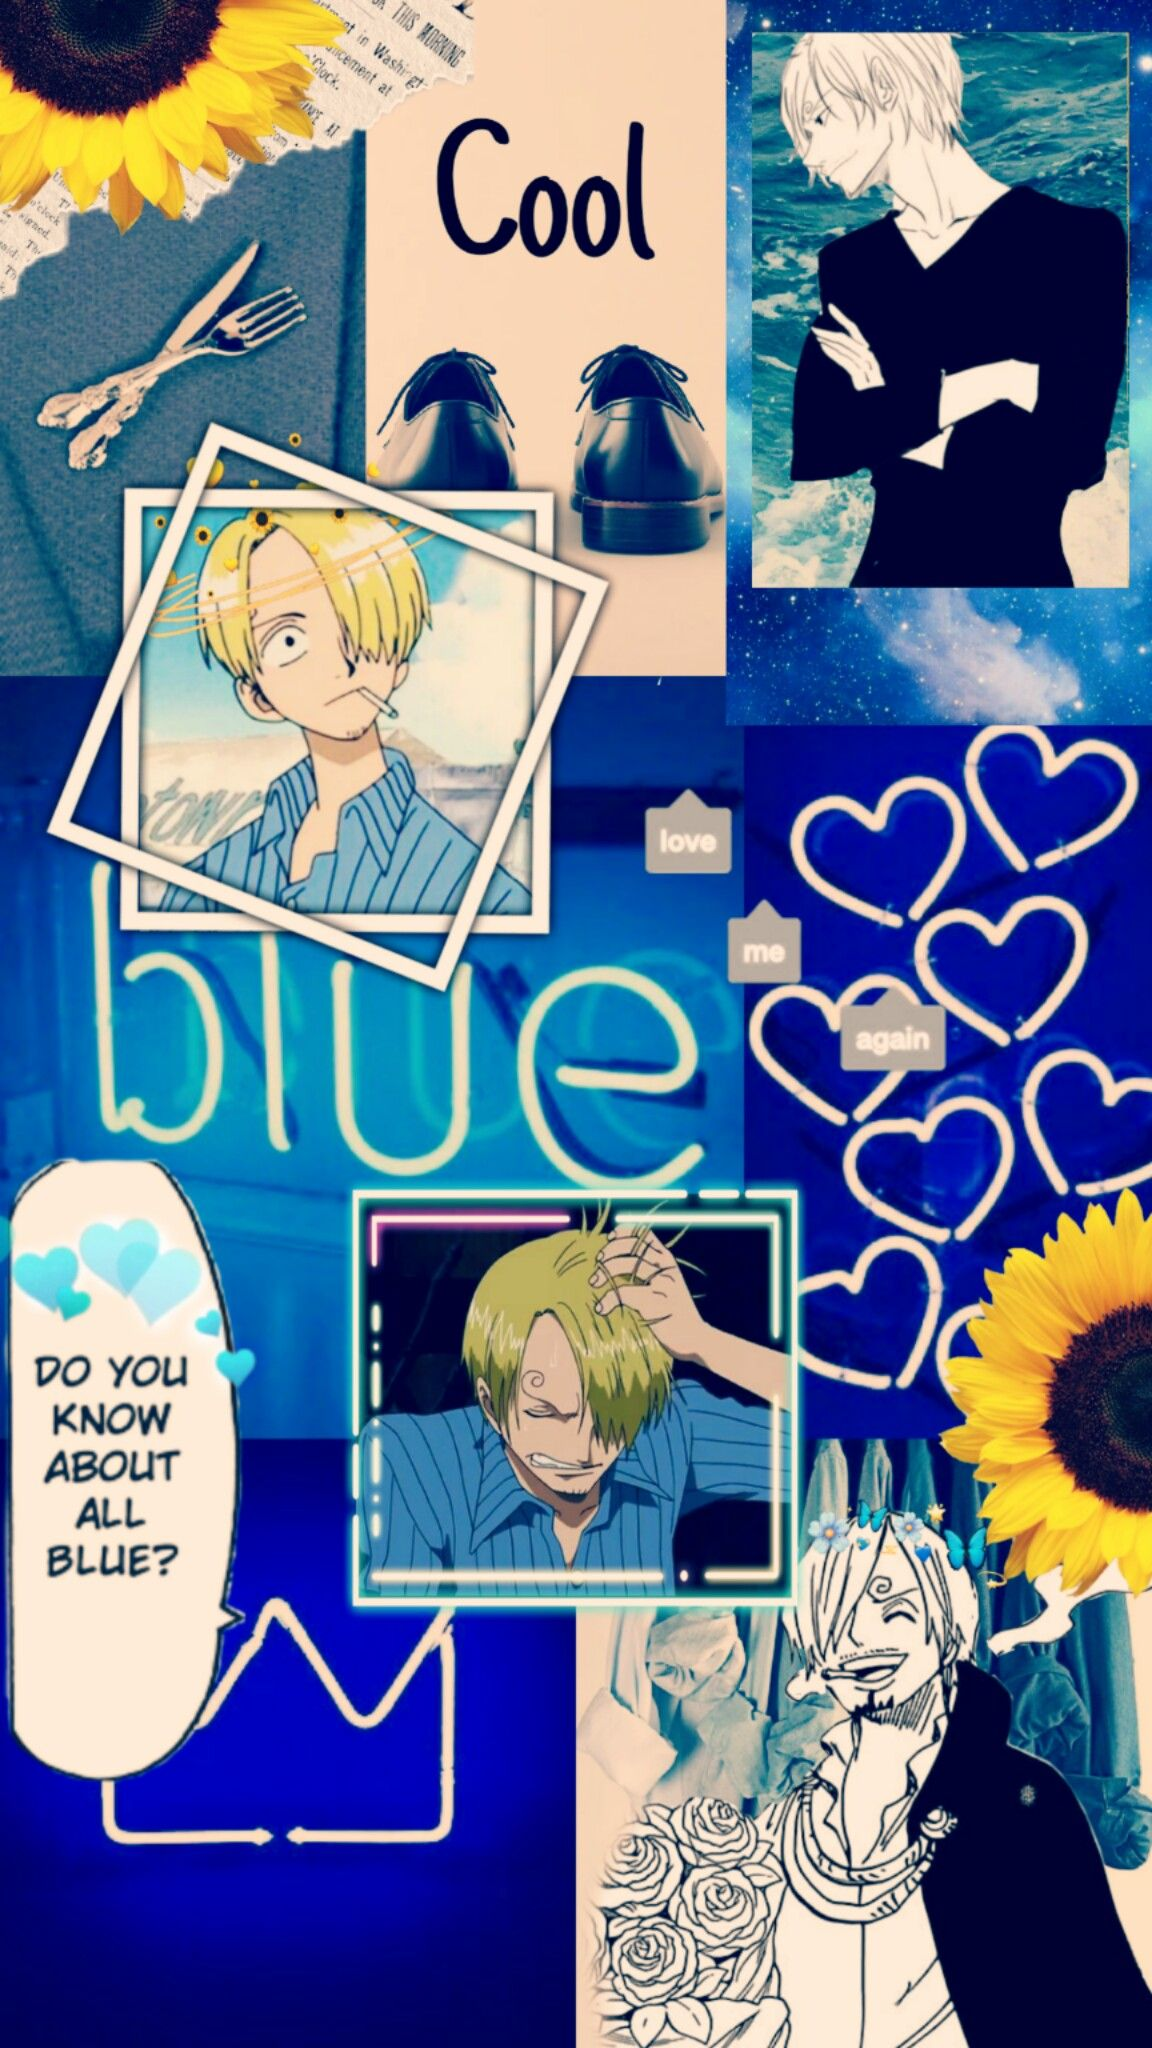 Sanji One Piece Sanji Aesthetic Anime Wallpaper One Piece Wallpaper Iphone One Piece Anime